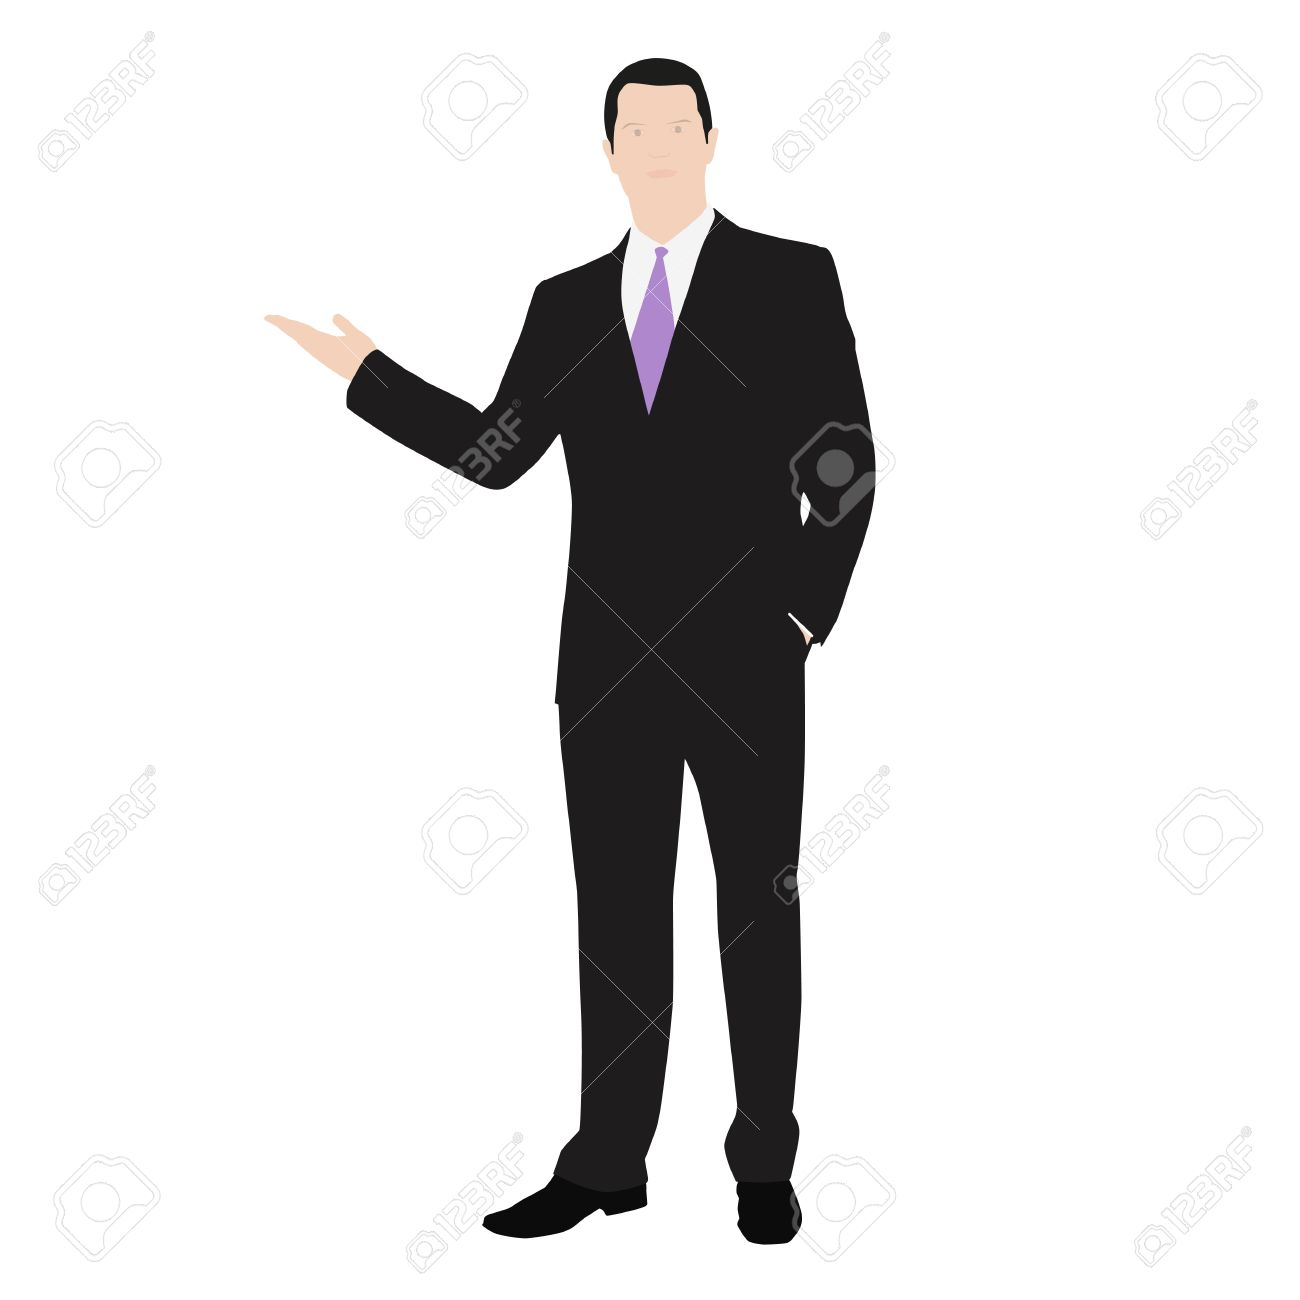 Vector drawing of a successful man dressed in a suit. Presentation or lecture. Show, featuring - 35771032